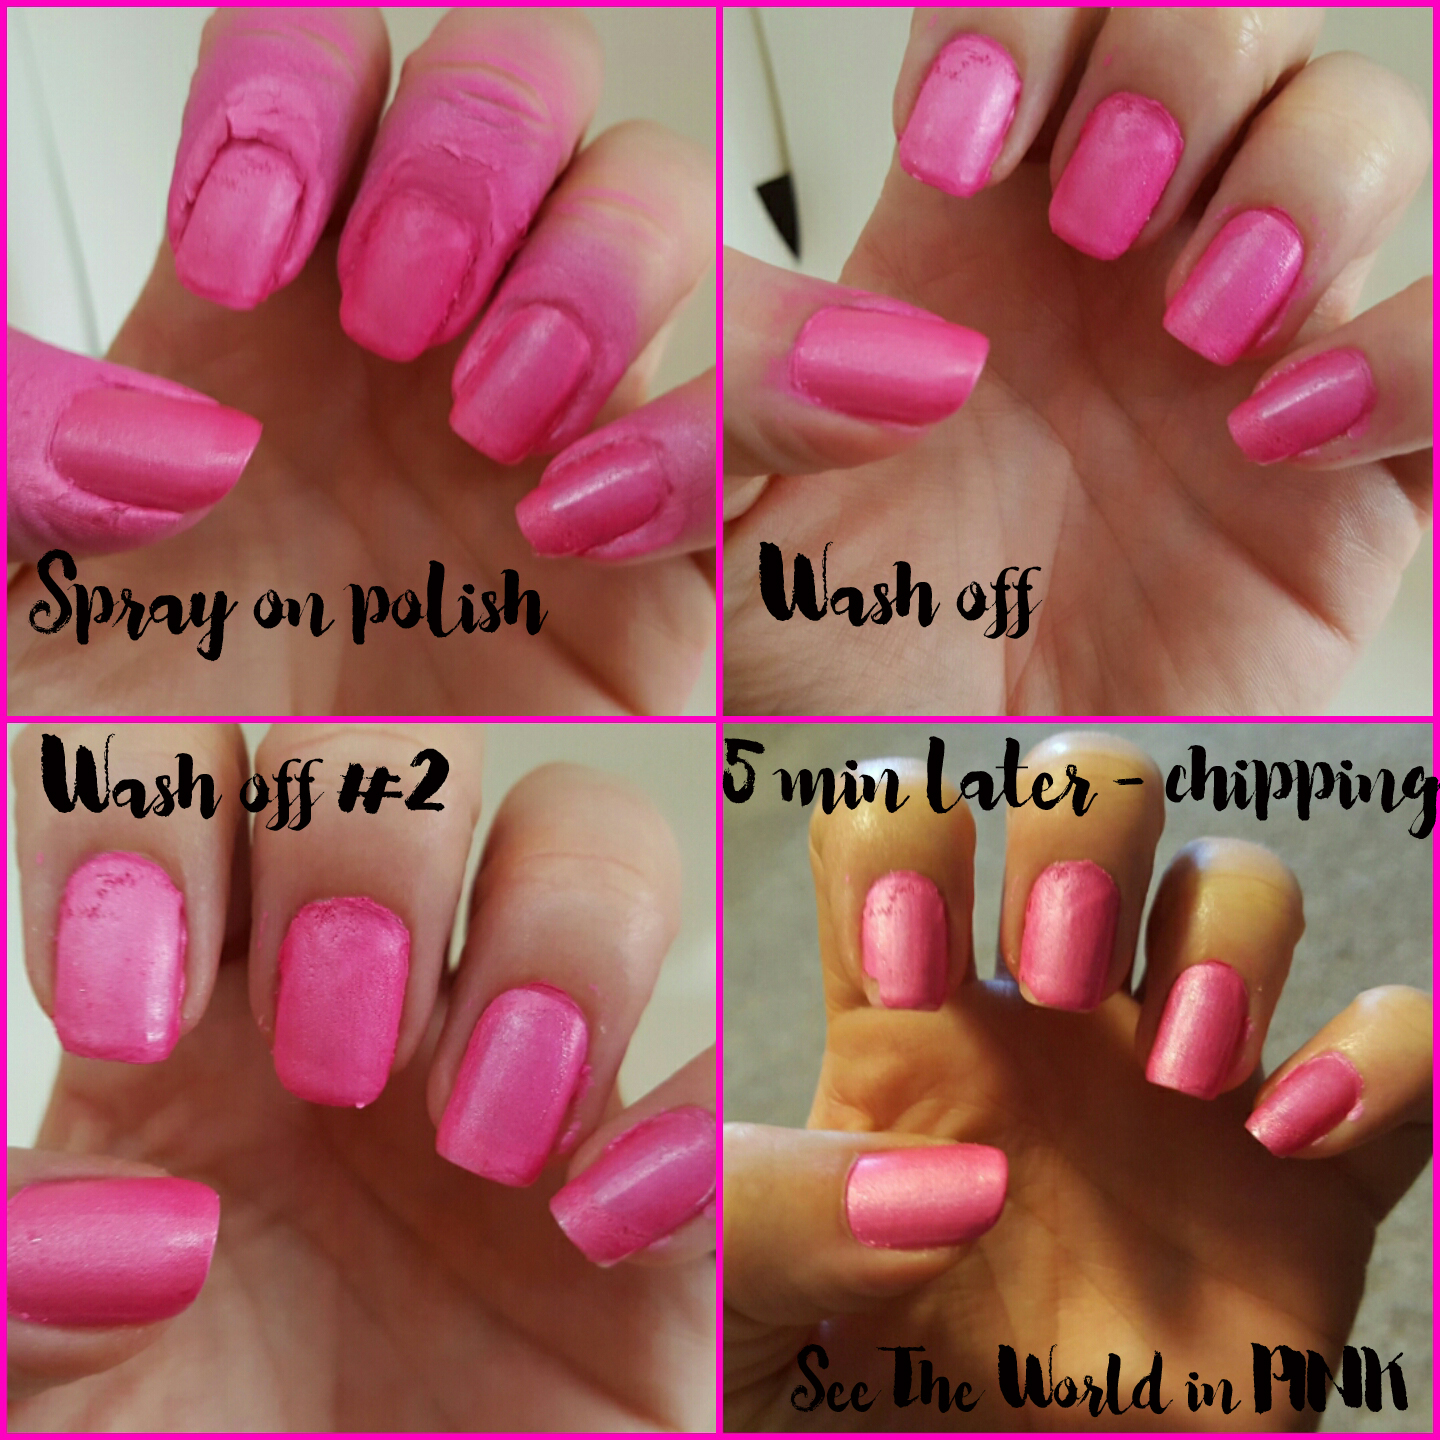 Manicure Monday - Nails Inc Paint Can Review (Spray On Polish) + an ...